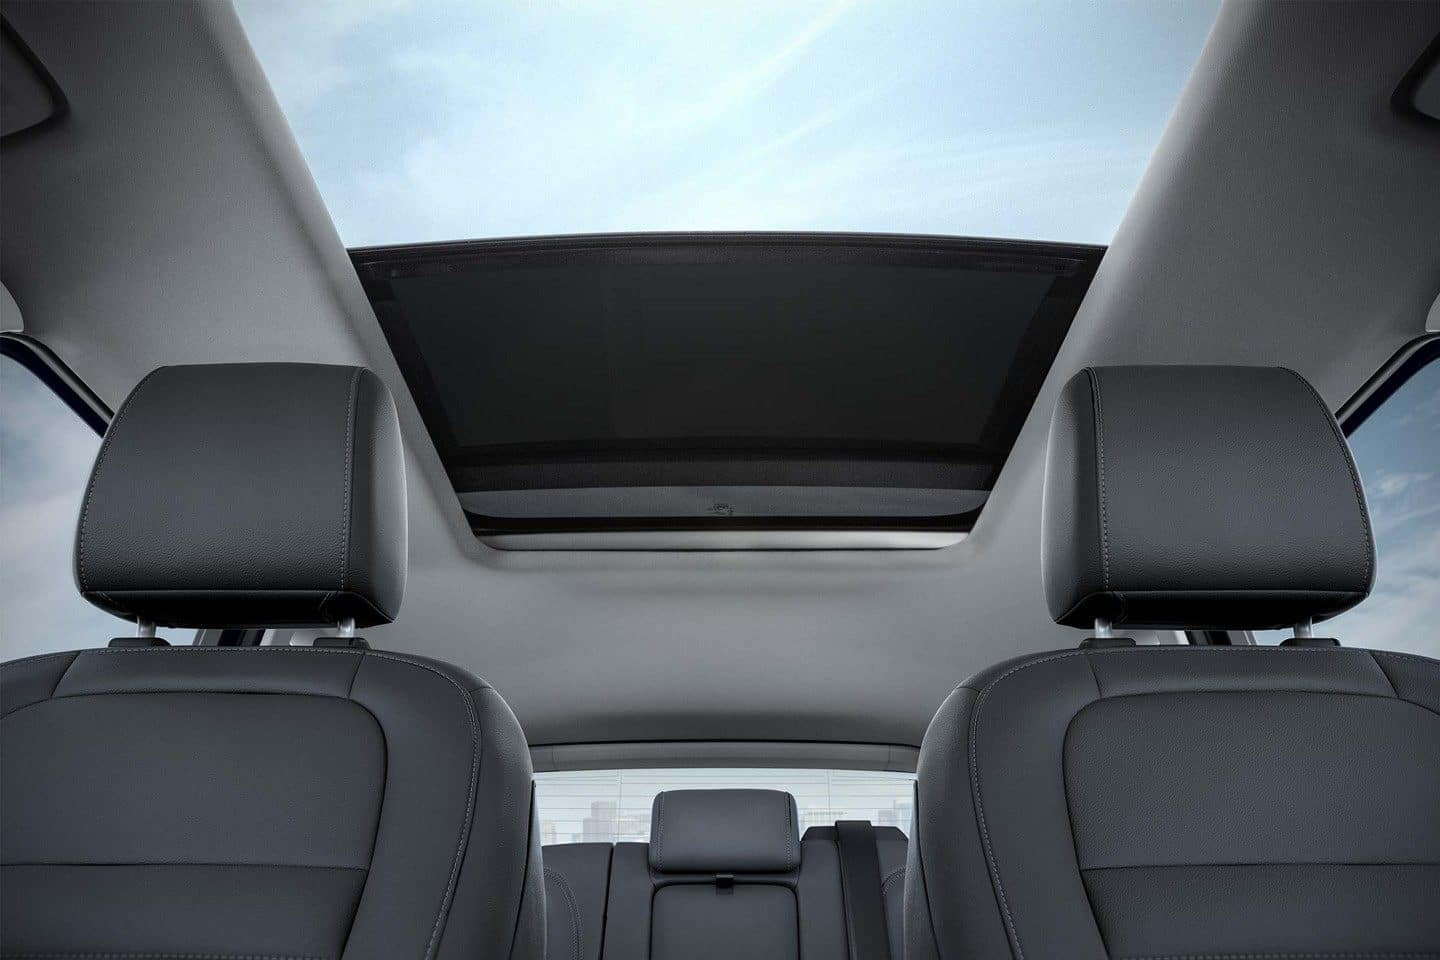 2019 Ford Escape Seats and Moonroof